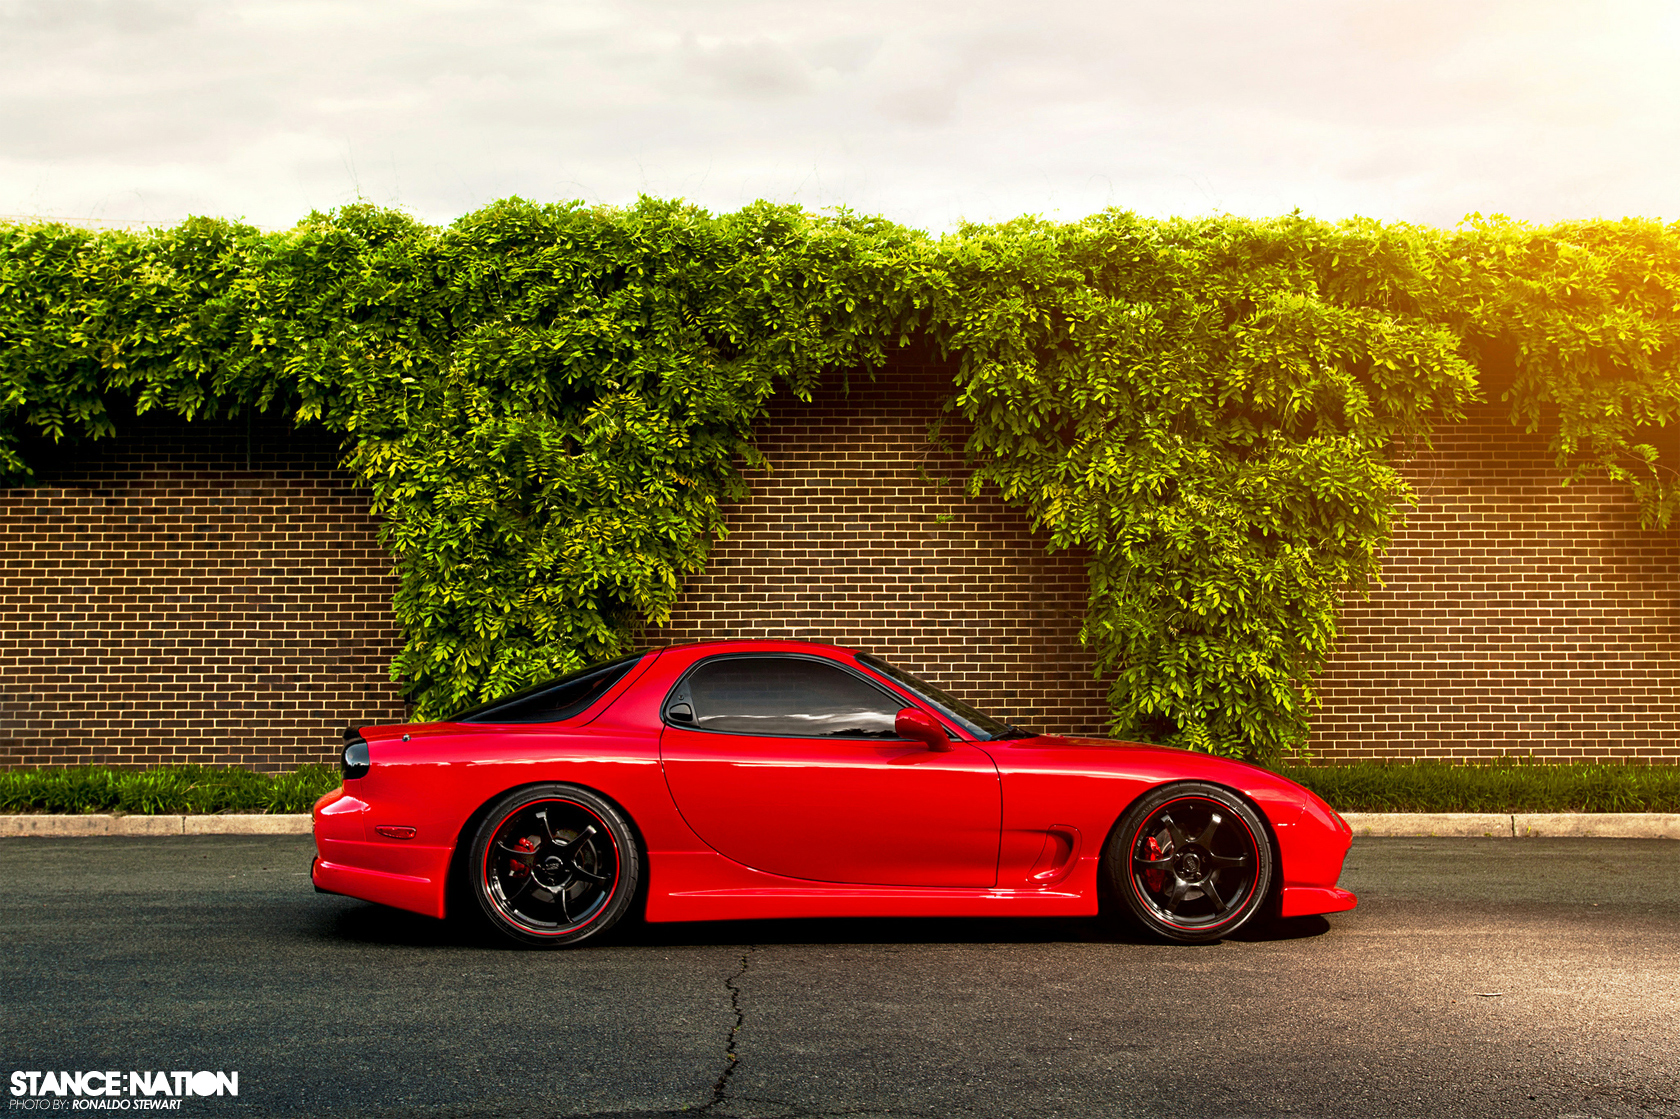 Form Function 454rwhp Mazda Rx7 Stancenation